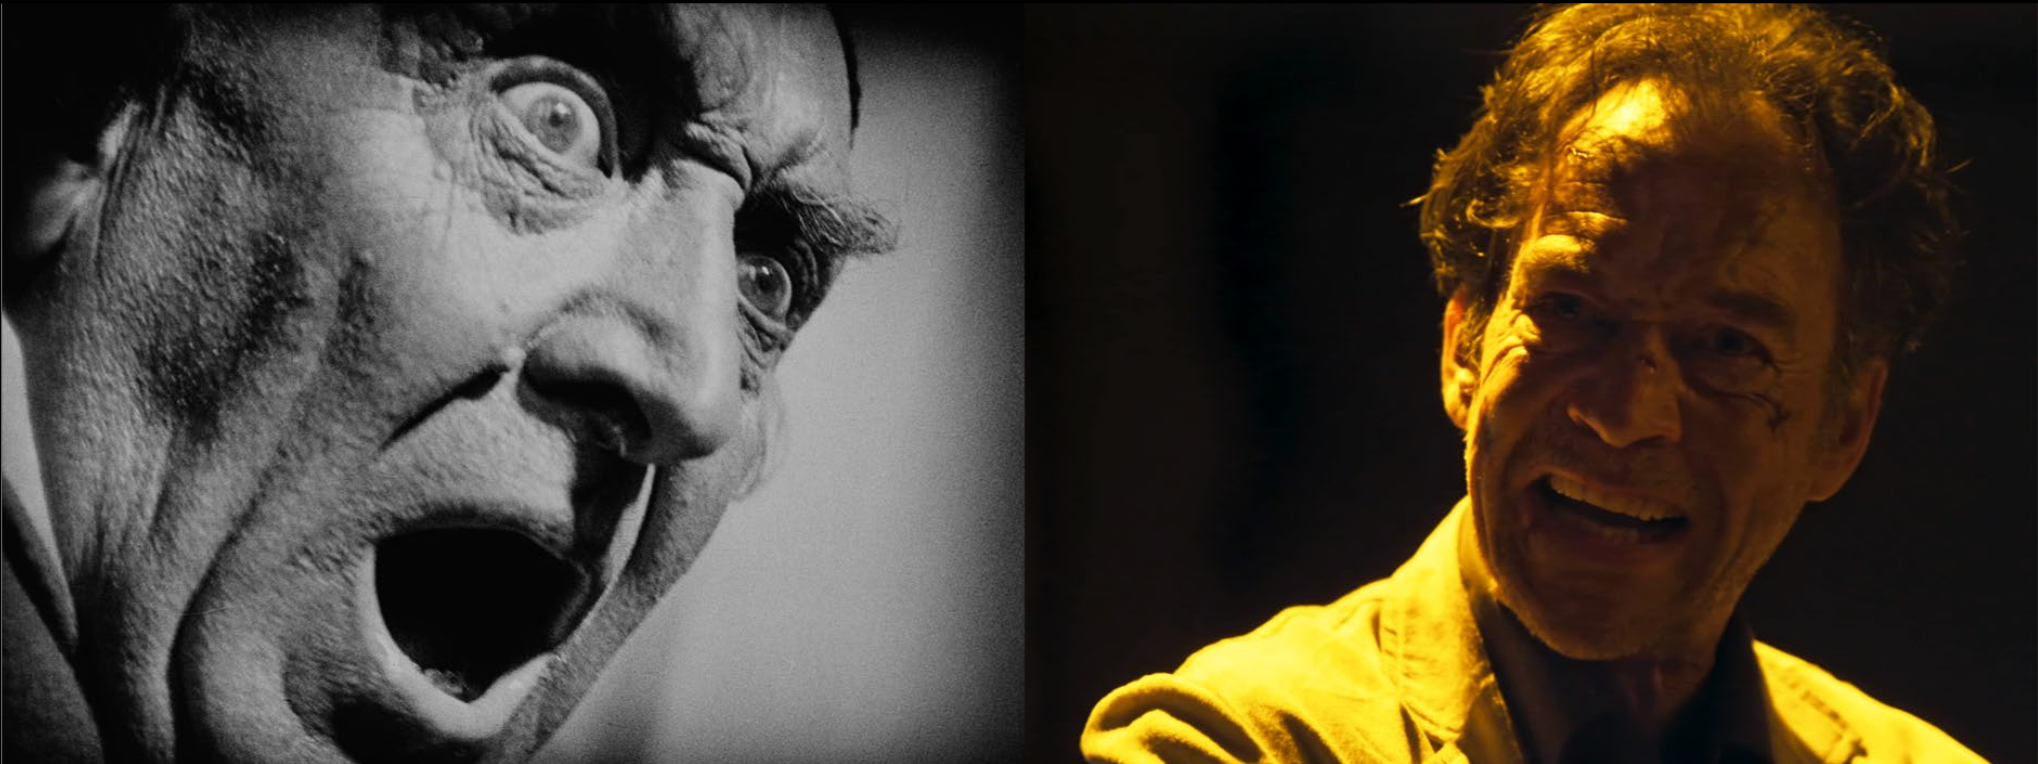 left: man with alarmed face (b/w), open mouth; right: man with angry face, open mouth (color)